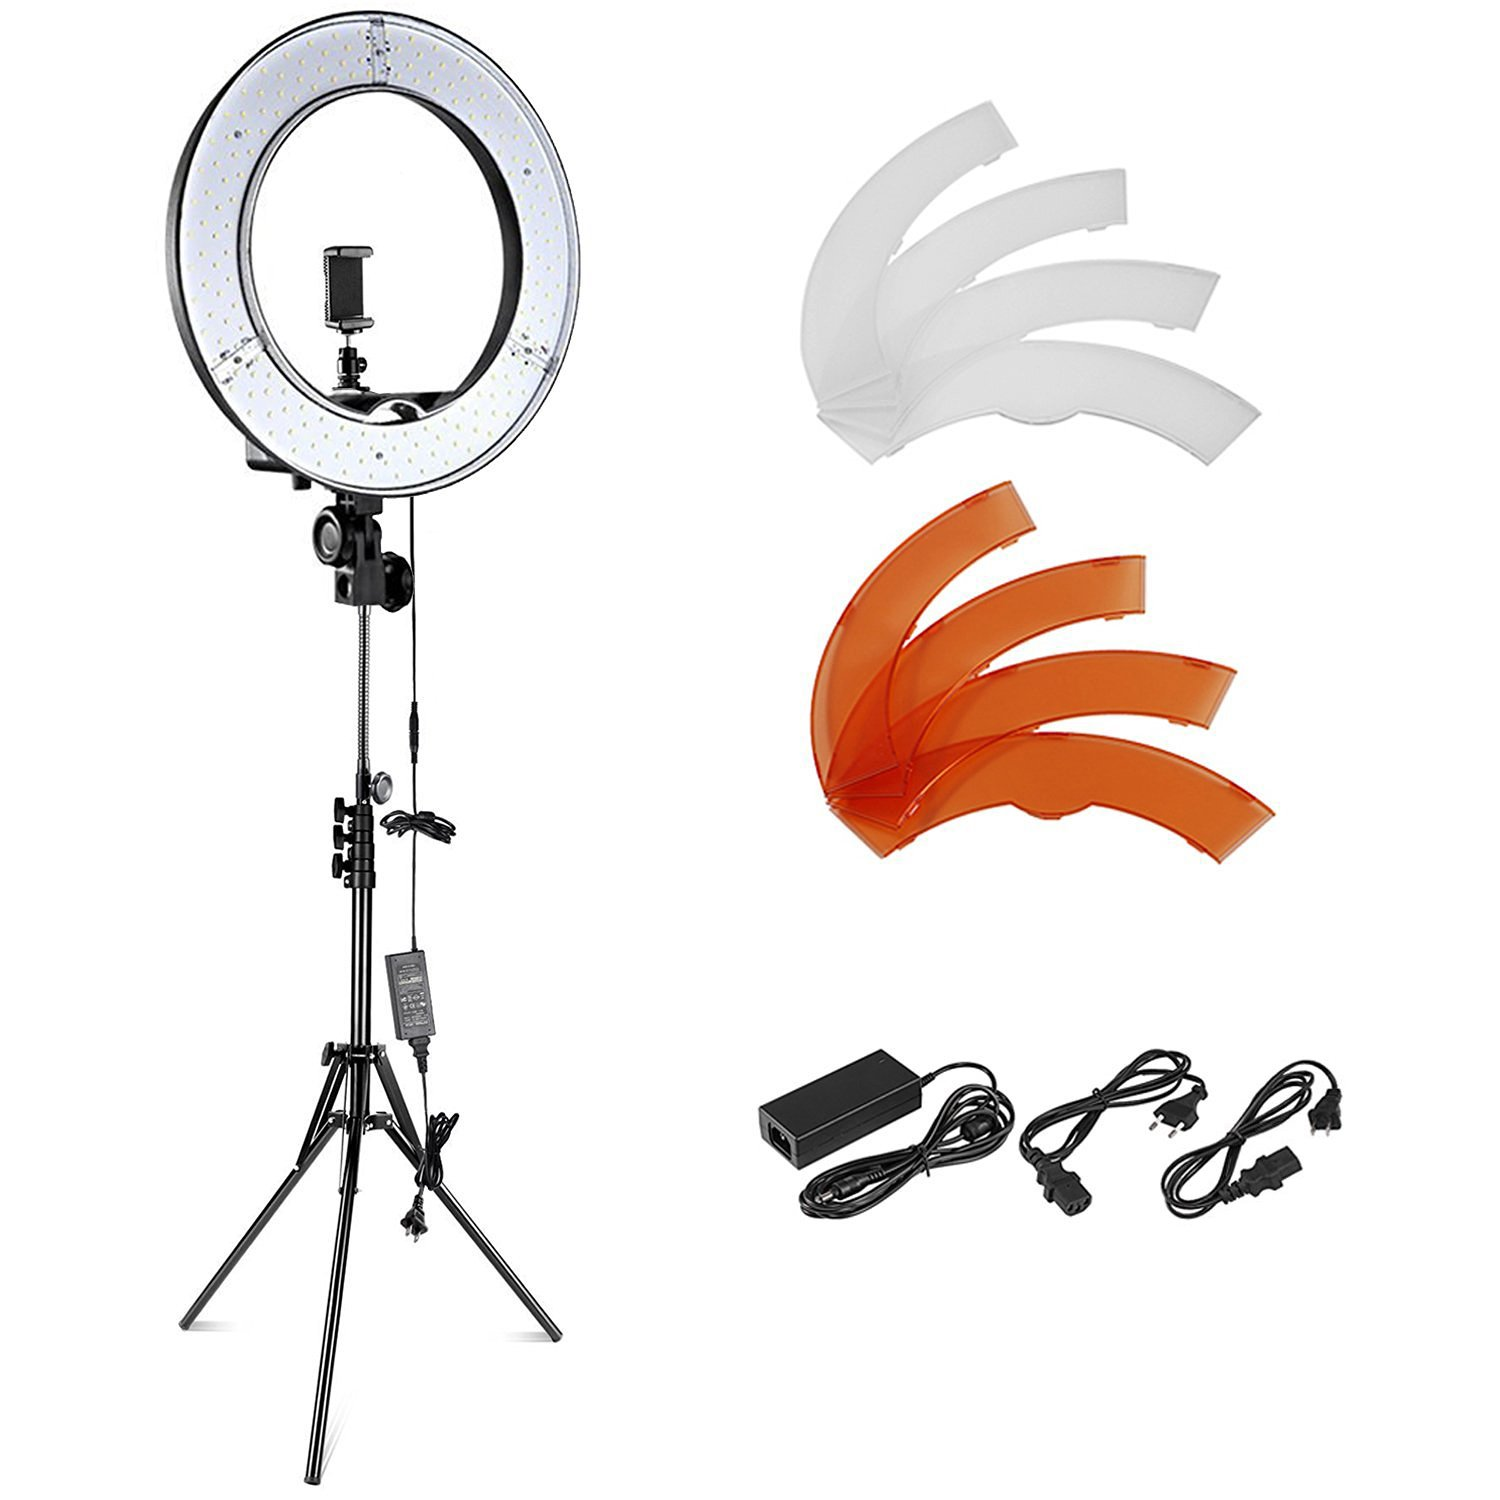 Neewer Camera Photo Video Lighting Kit: 18 inches/48 centimeters Dimmable LED Ring Light